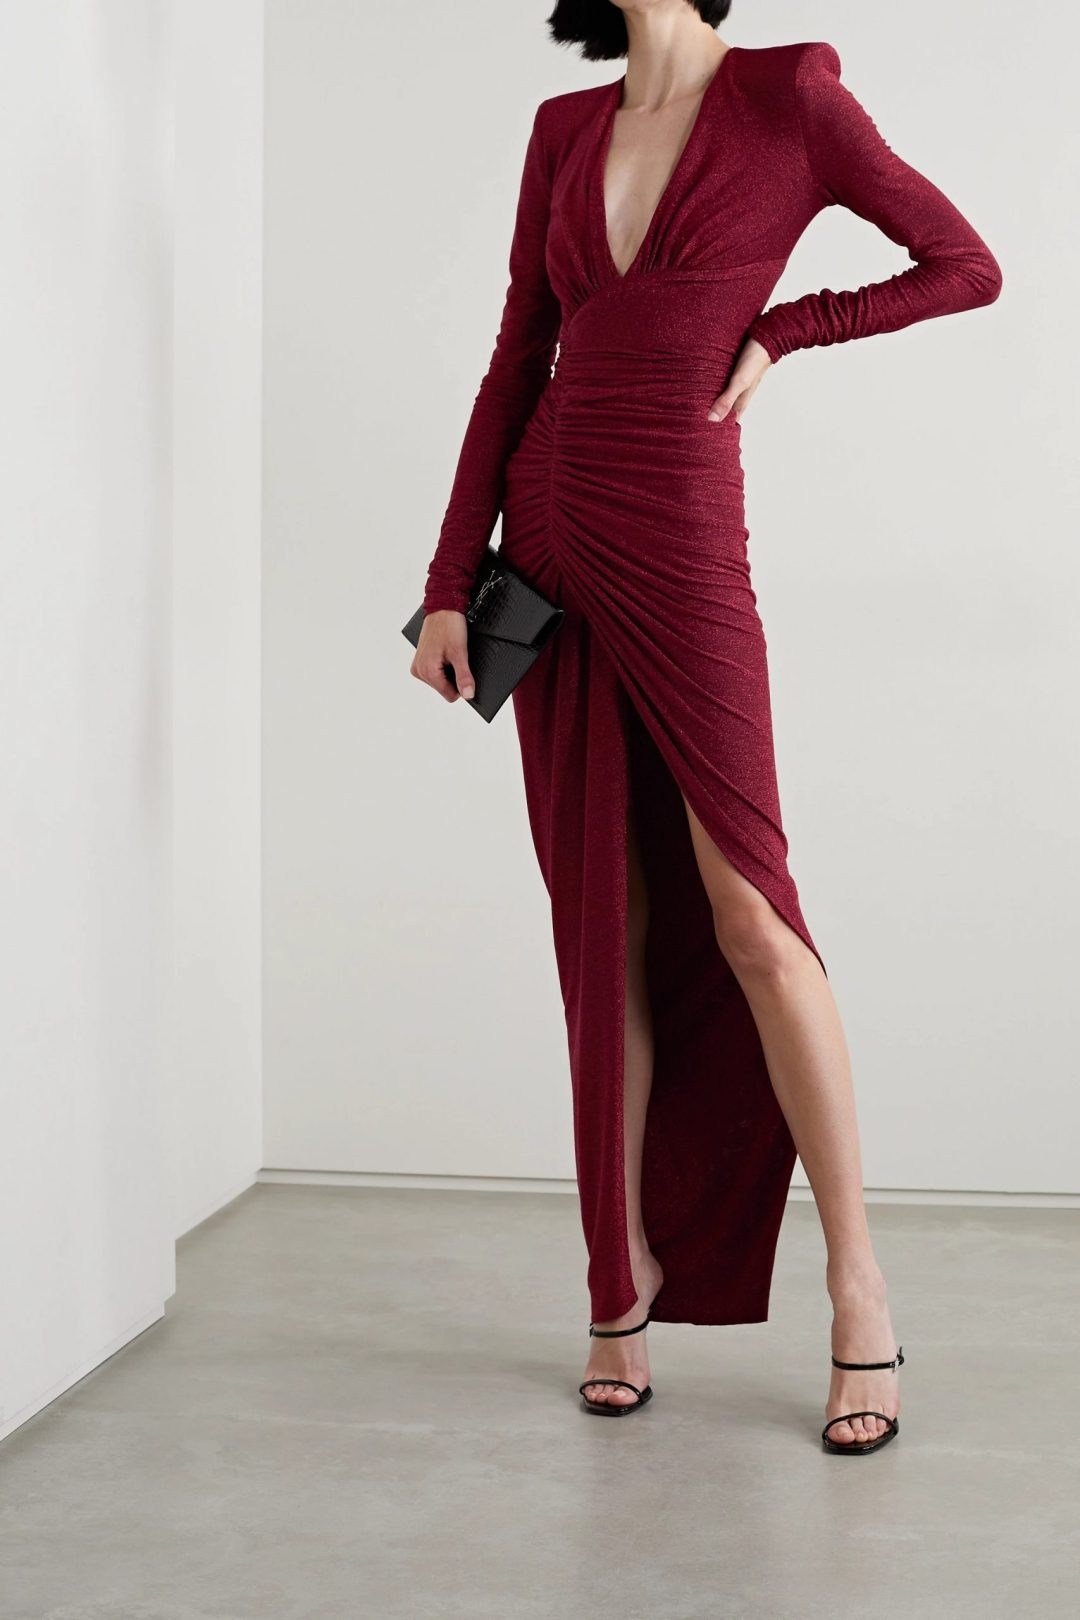 What To Wear At A Masquerade Party: Deep red evening gown designer